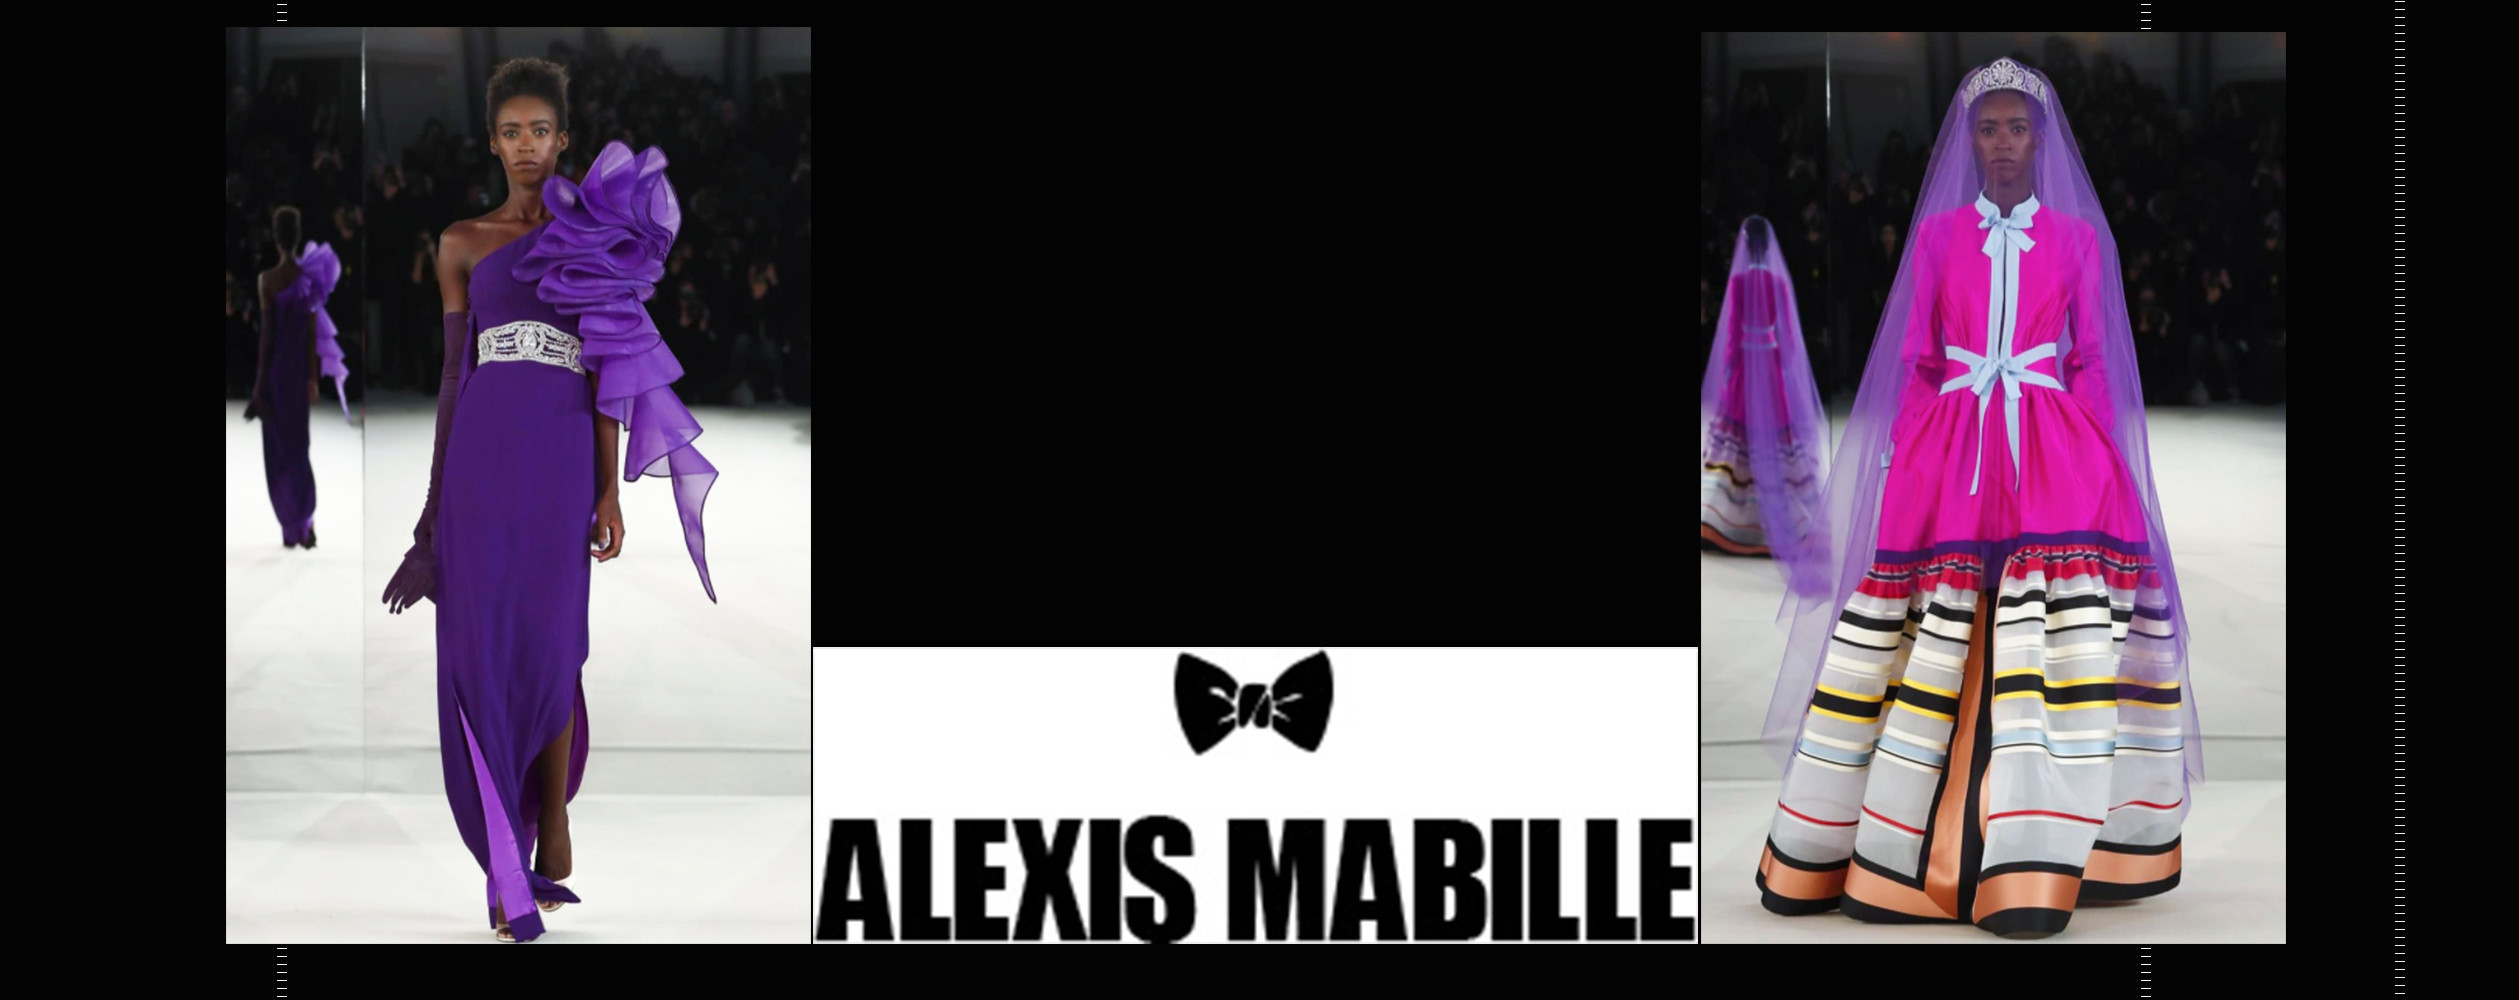 Viviane for Alexis Mabille #CoutureSS2017